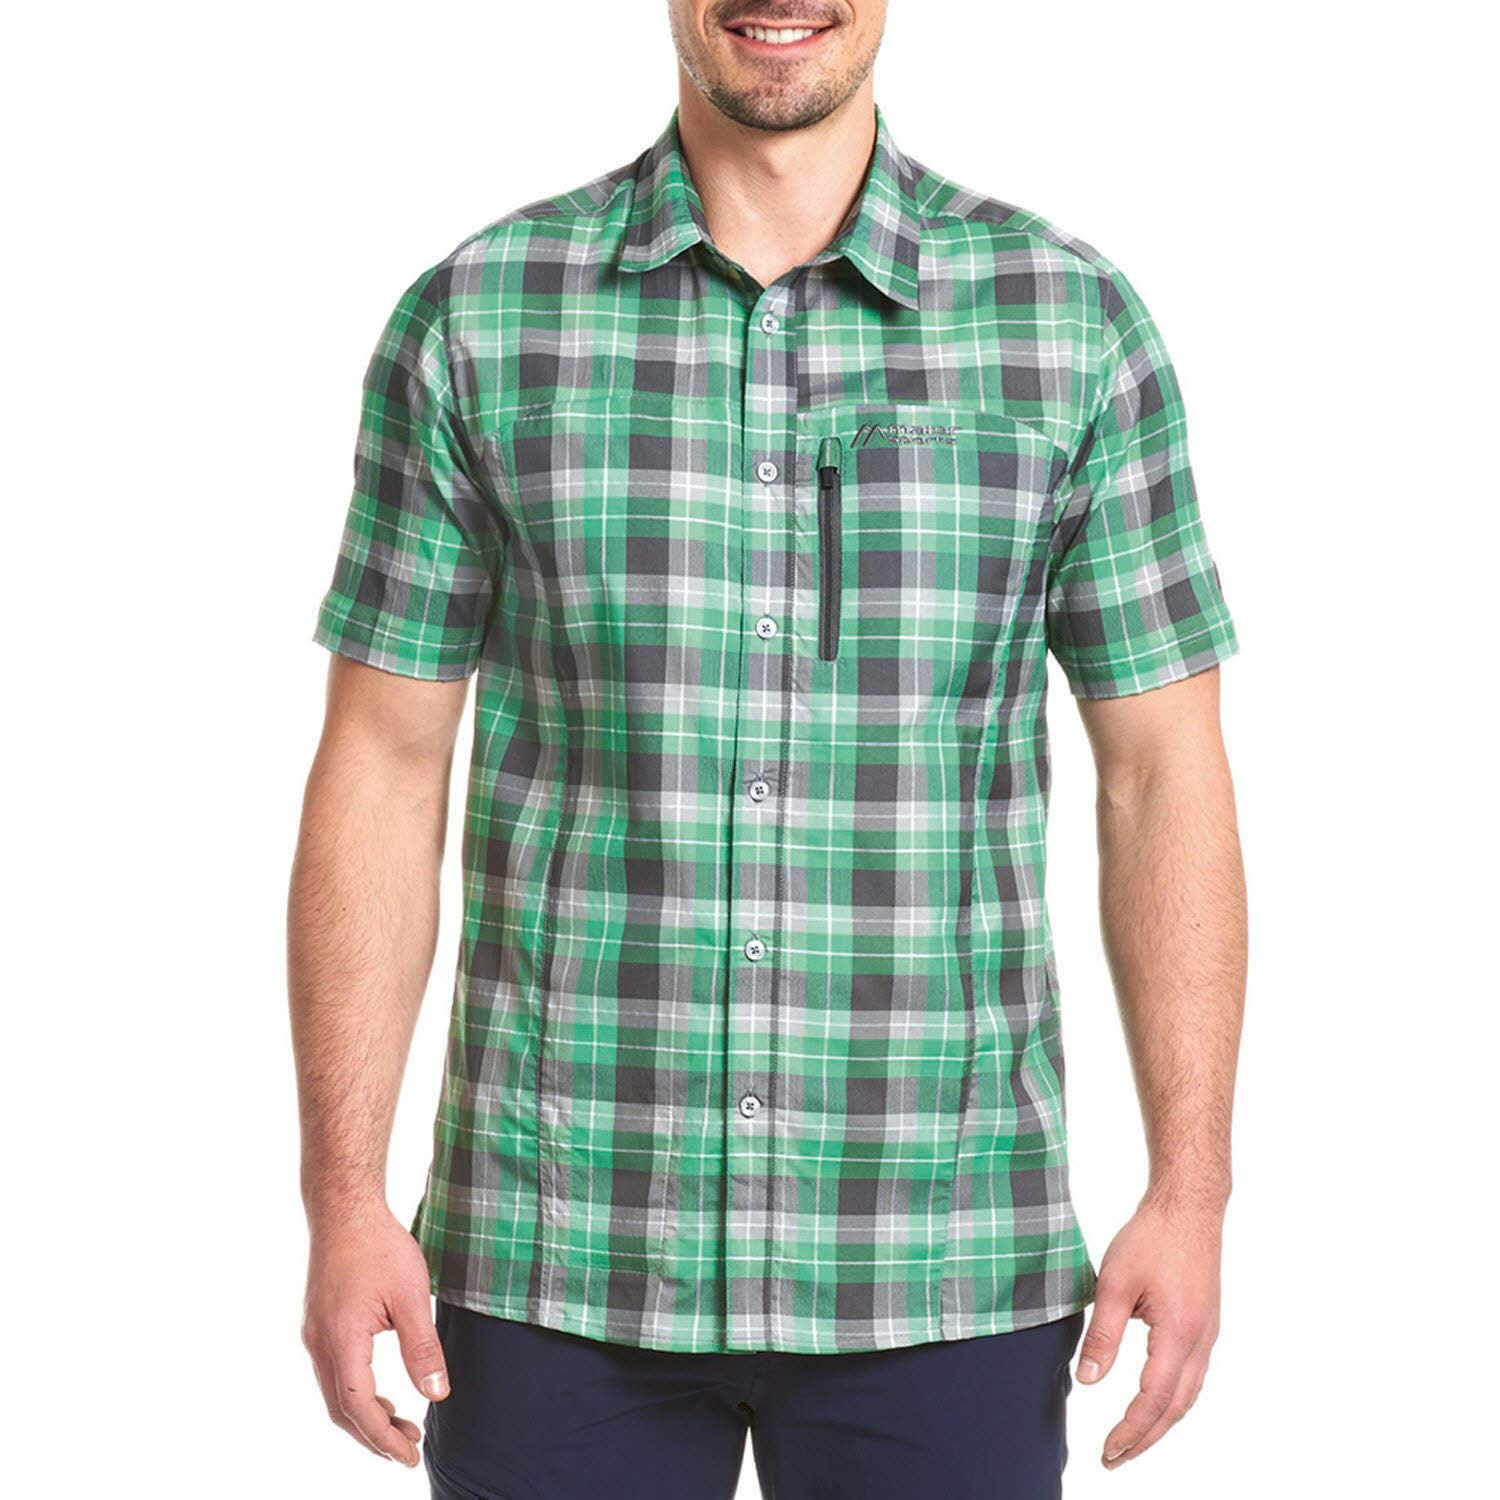 Maier Sports Herren Funktionshemd Madoc S/S green/grey check 54